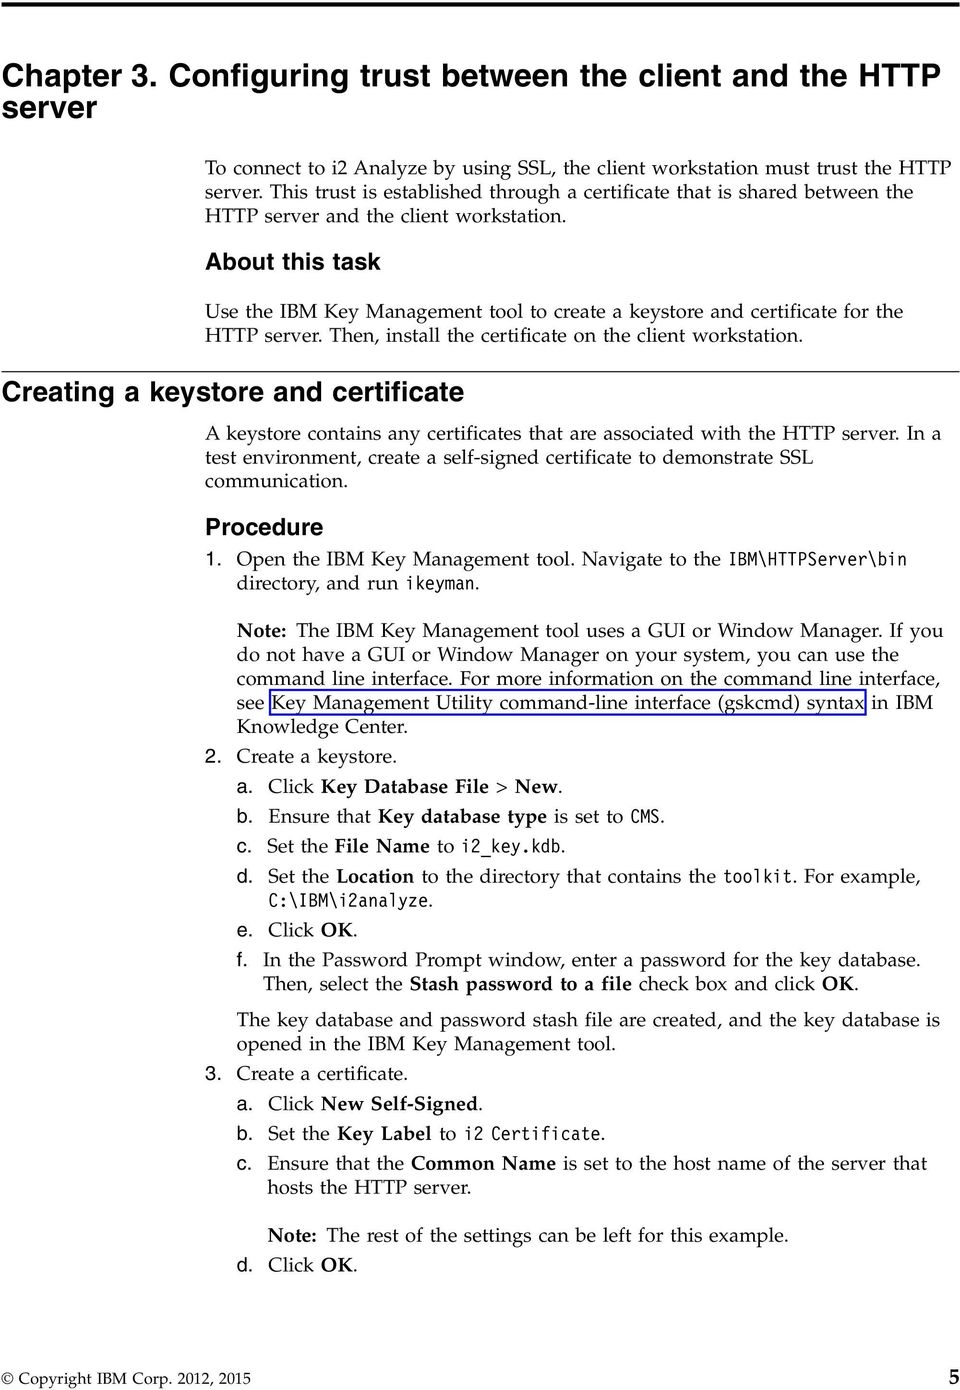 About this task Use the IBM Key Management tool to create a keystore and certificate for the HTTP server. Then, install the certificate on the client workstation.